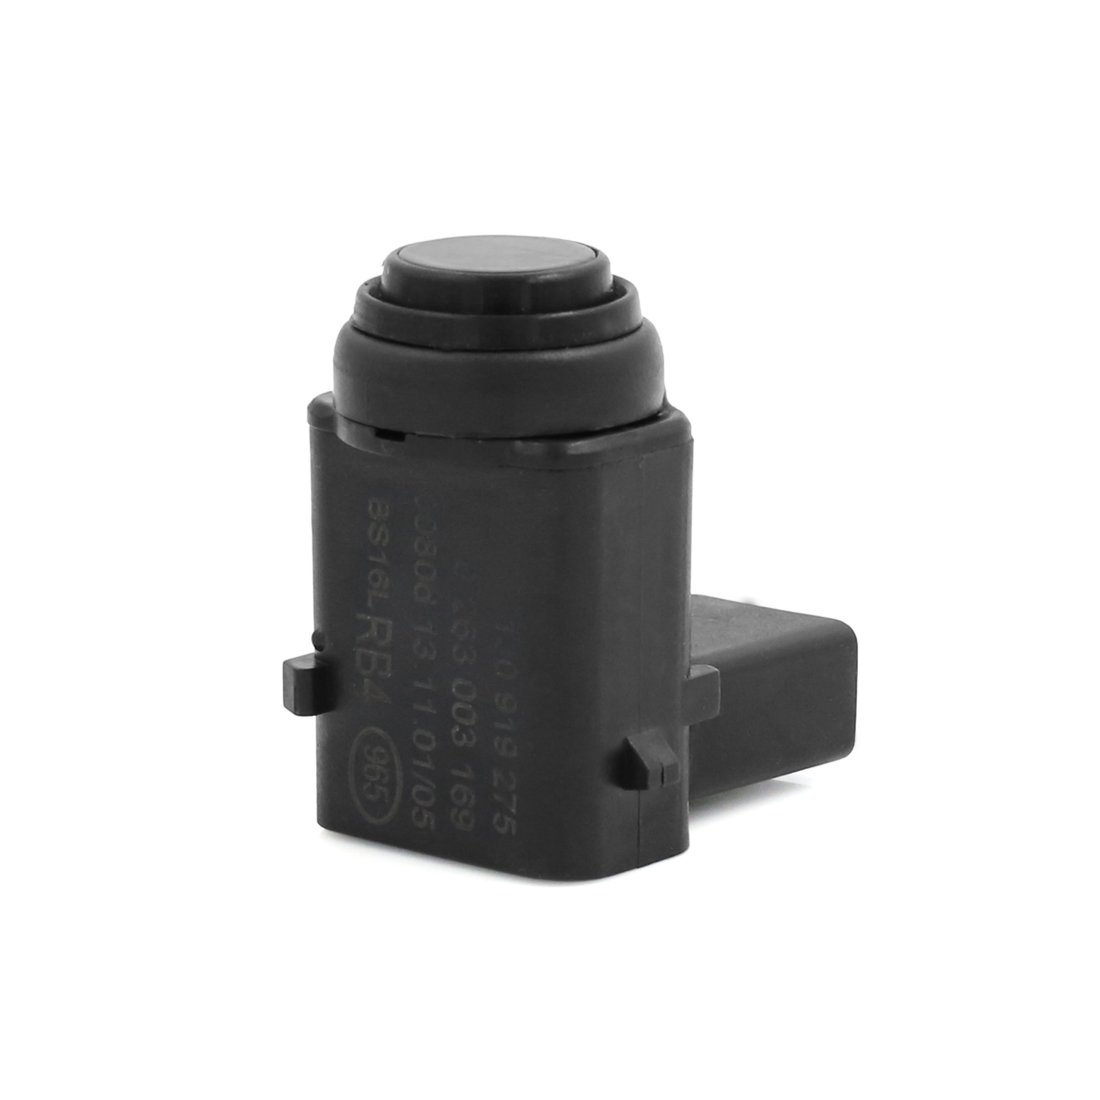 uxcell a16121300ux0607 Parking Aid Sensor